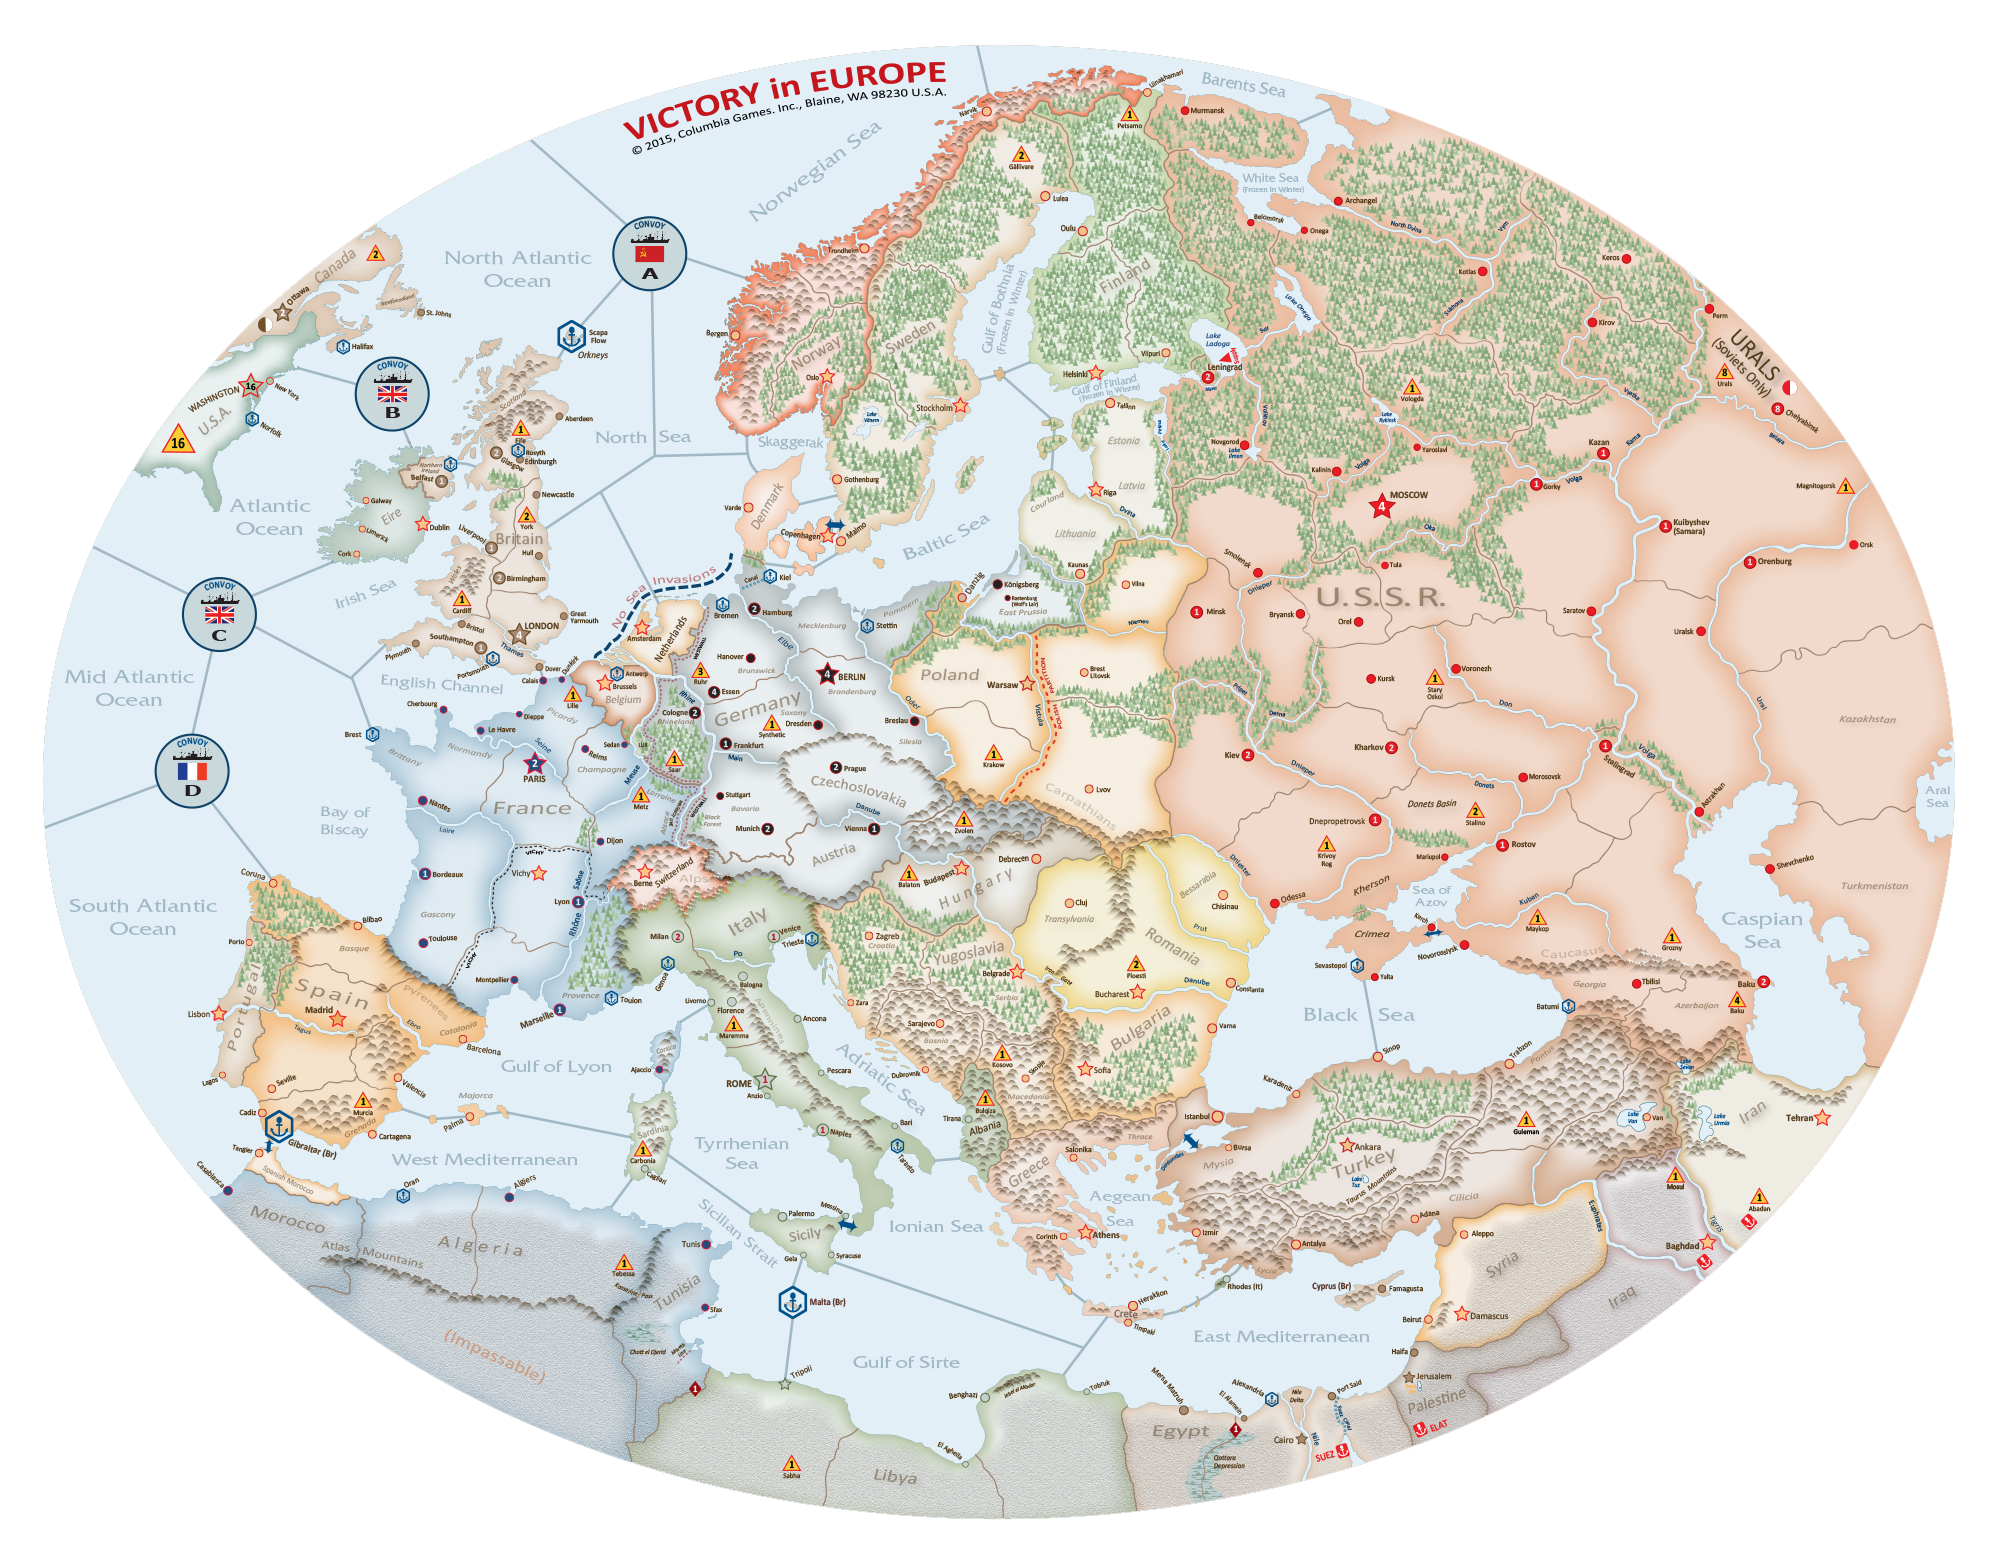 Victory in europe axis allies wiki fandom powered by wikia 3402ve map 2000 gumiabroncs Image collections